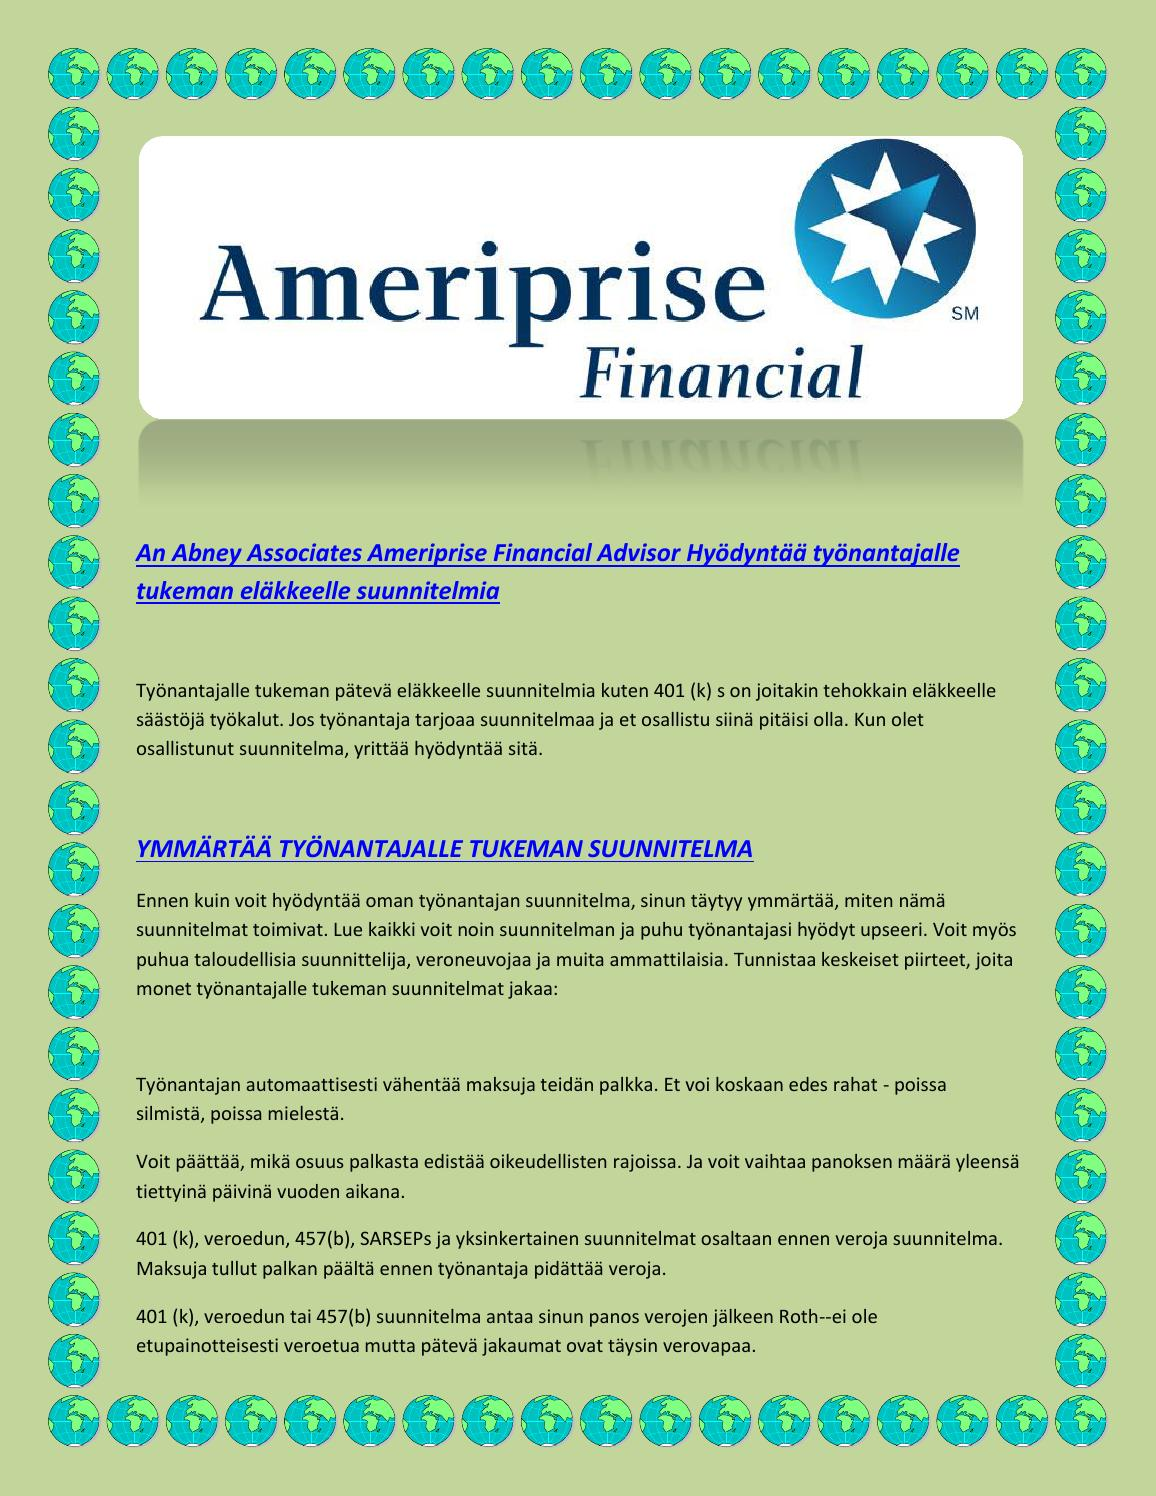 abney associates ameriprise financial advisor merging